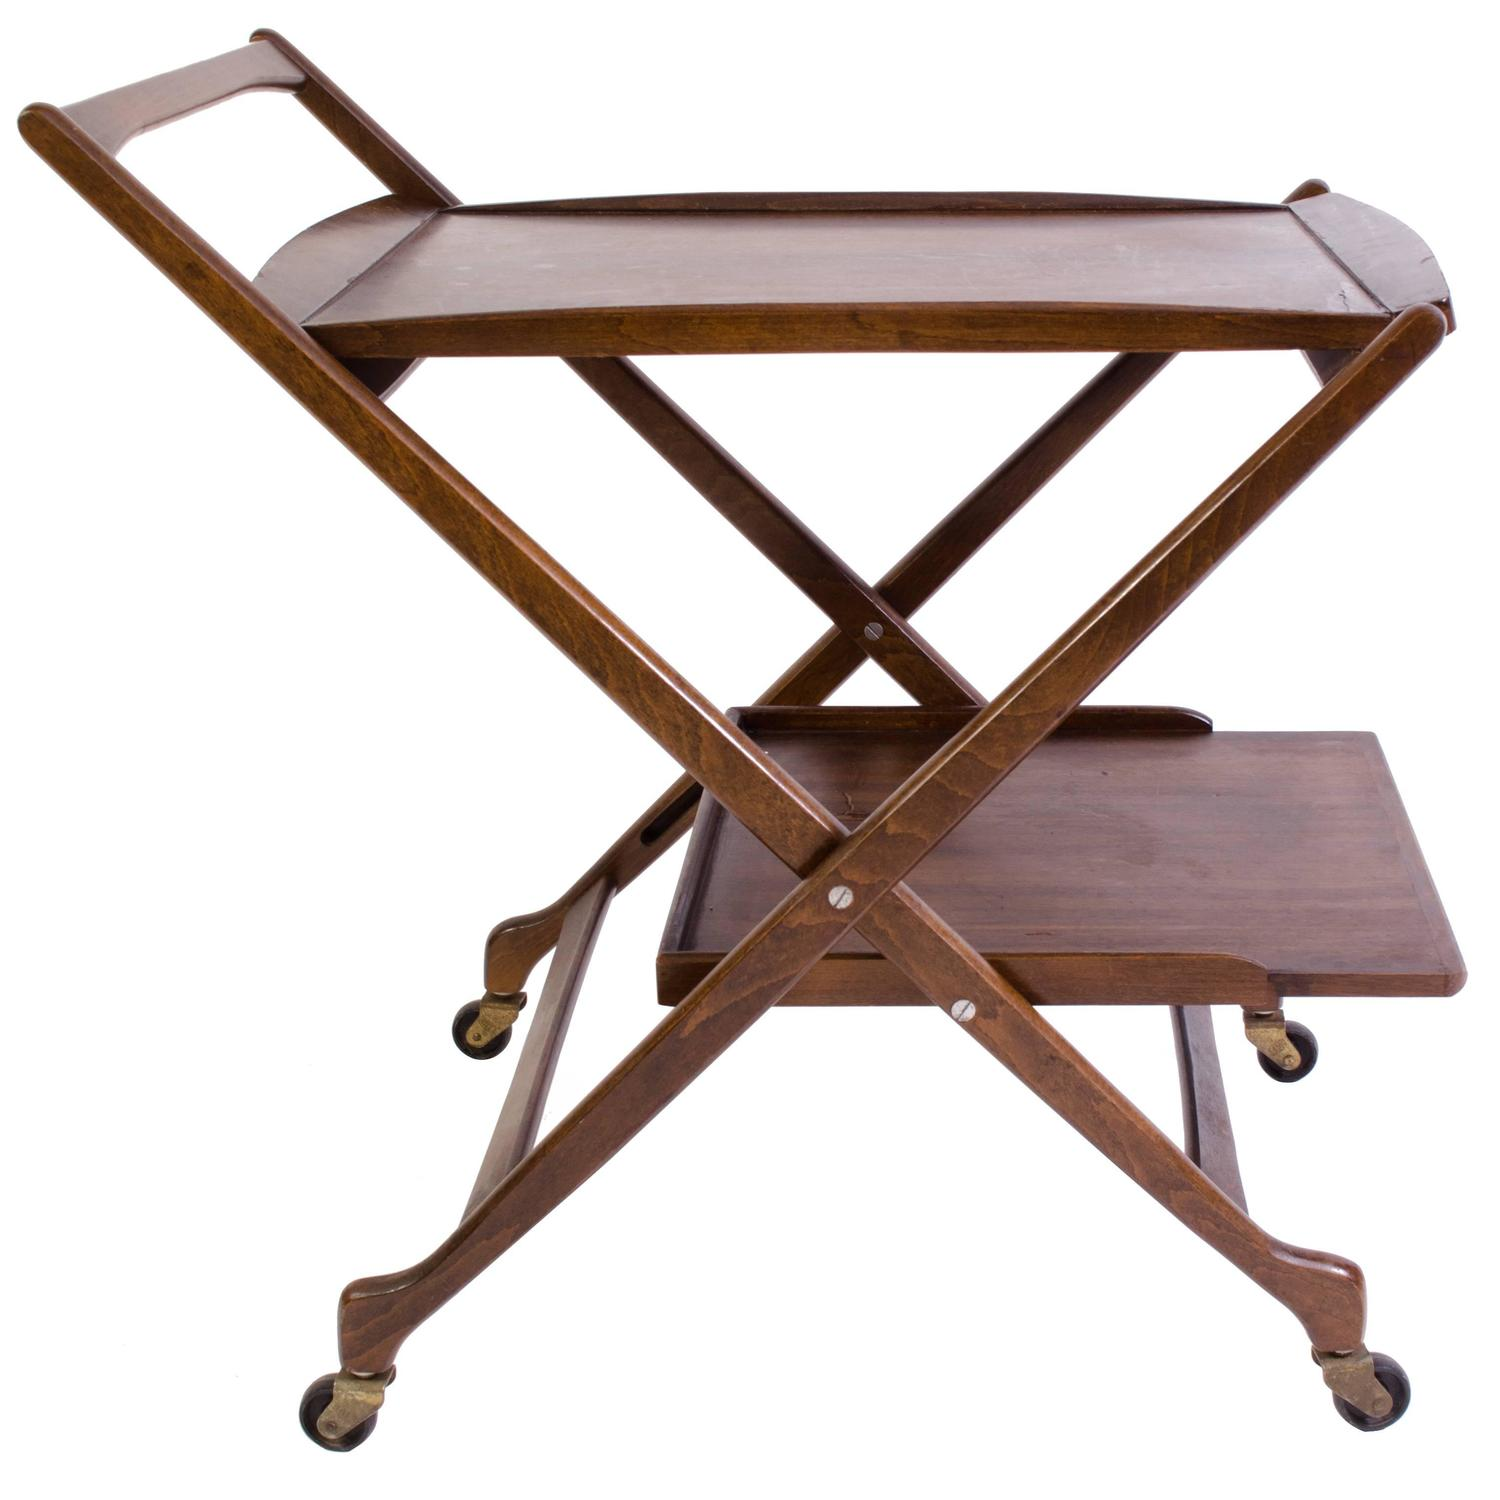 Danish Folding Walnut Bar Cart with Serving Tray For Sale at 1stdibs